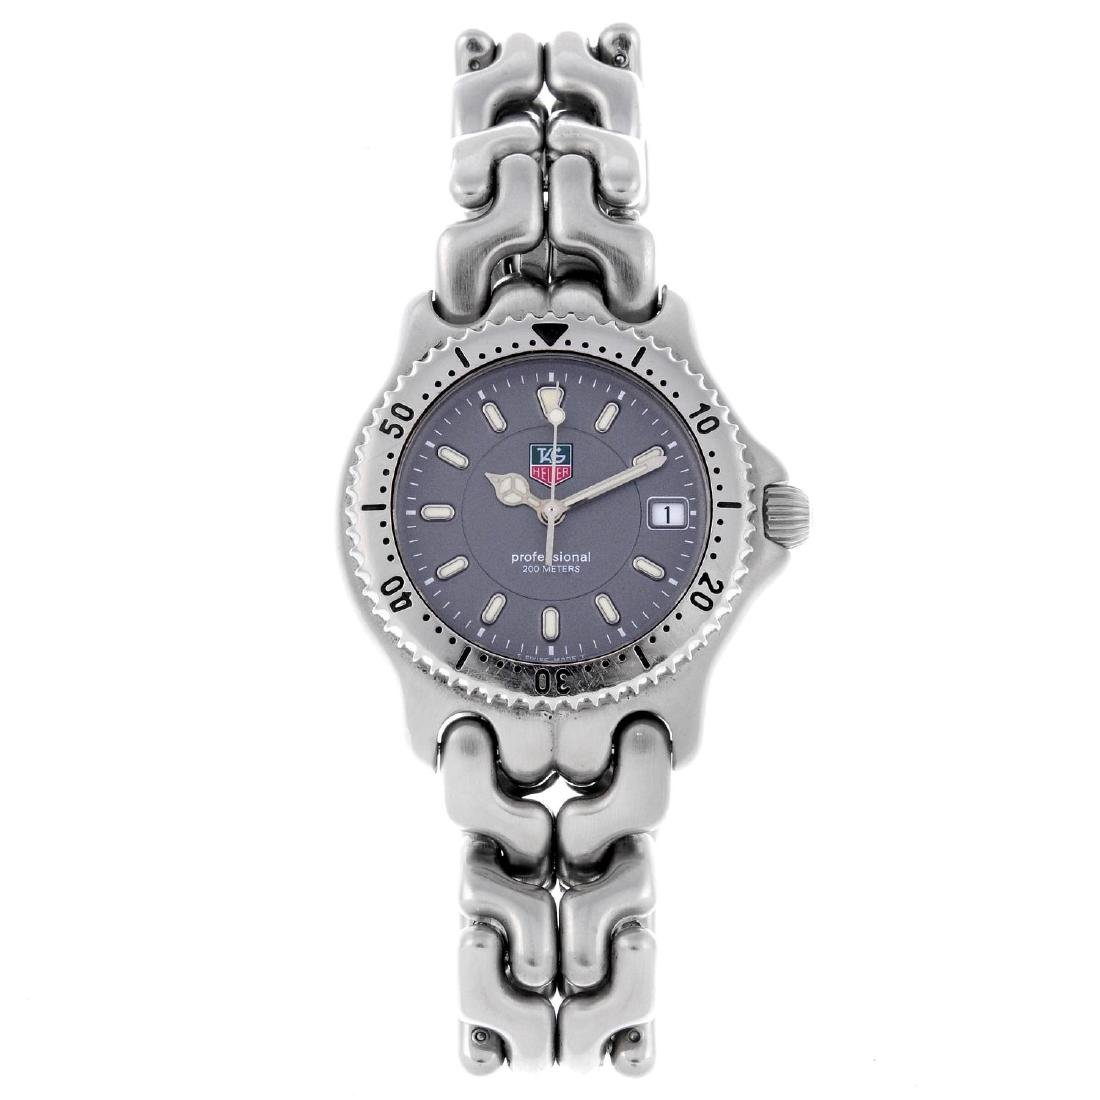 TAG HEUER - a mid-size S/el bracelet watch. Stainless